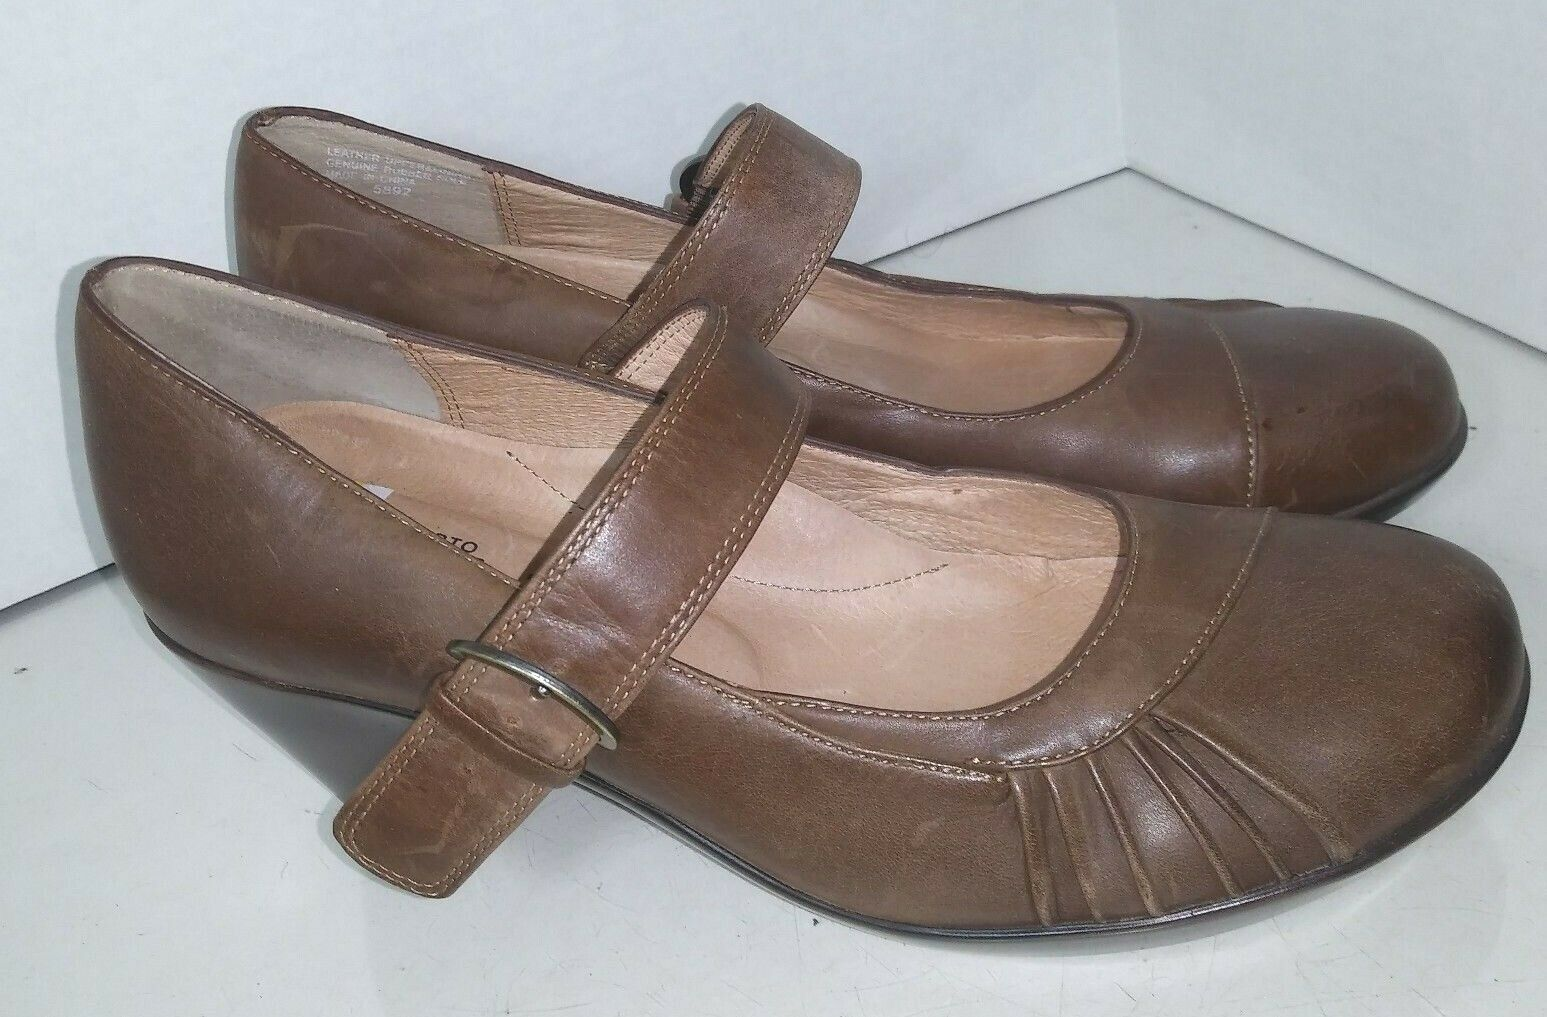 Umberto Raffini Brown Leather Mary Janes shoes Womens Size 39